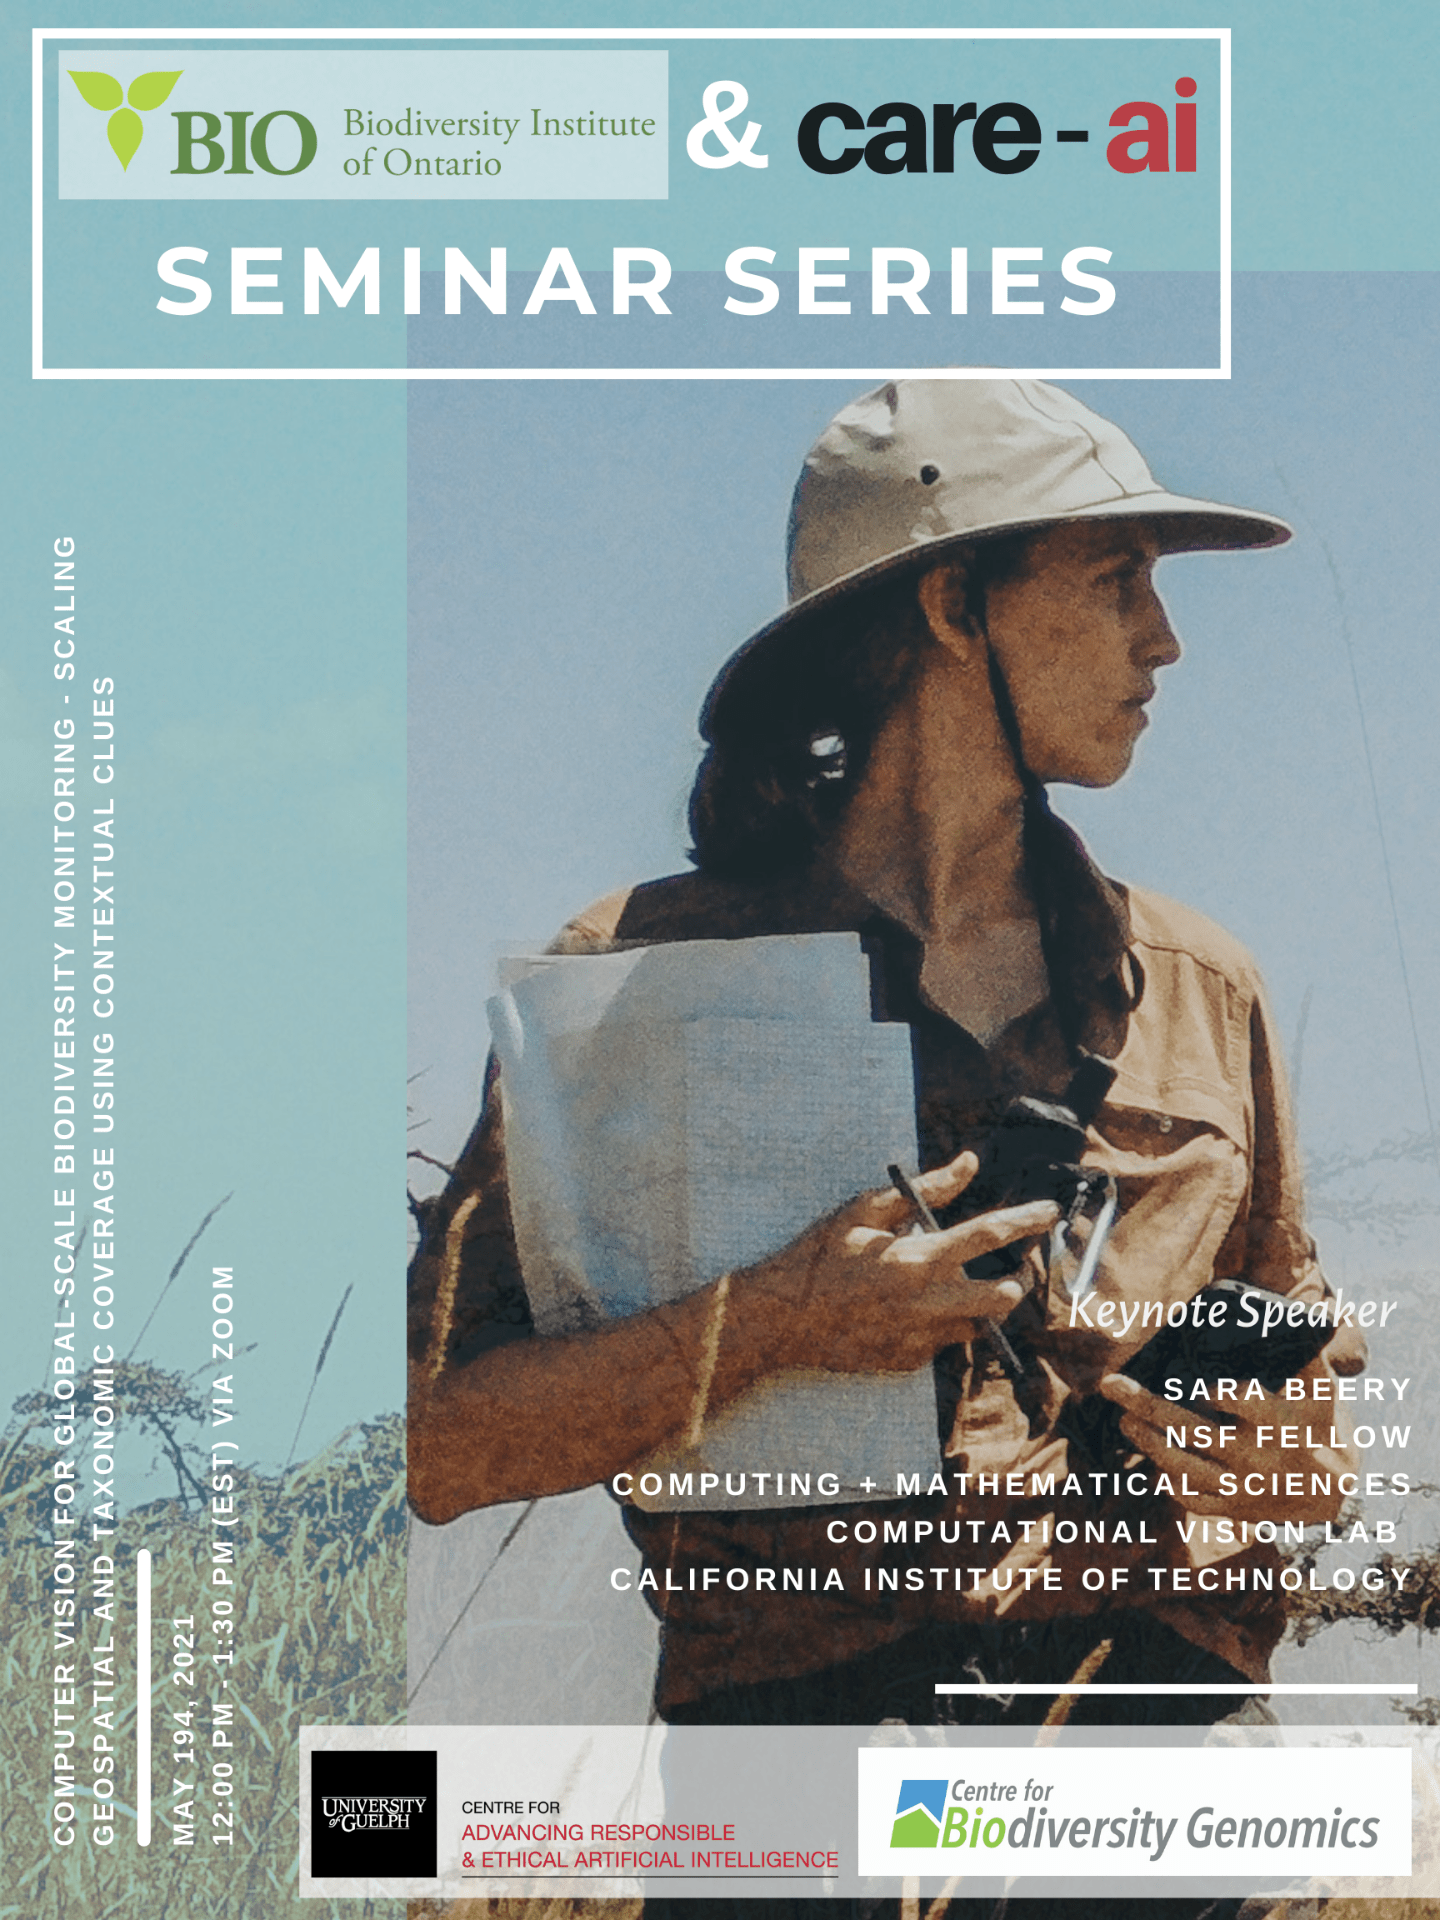 Poster for joint Care-AI and Biodiversity Seminar Series